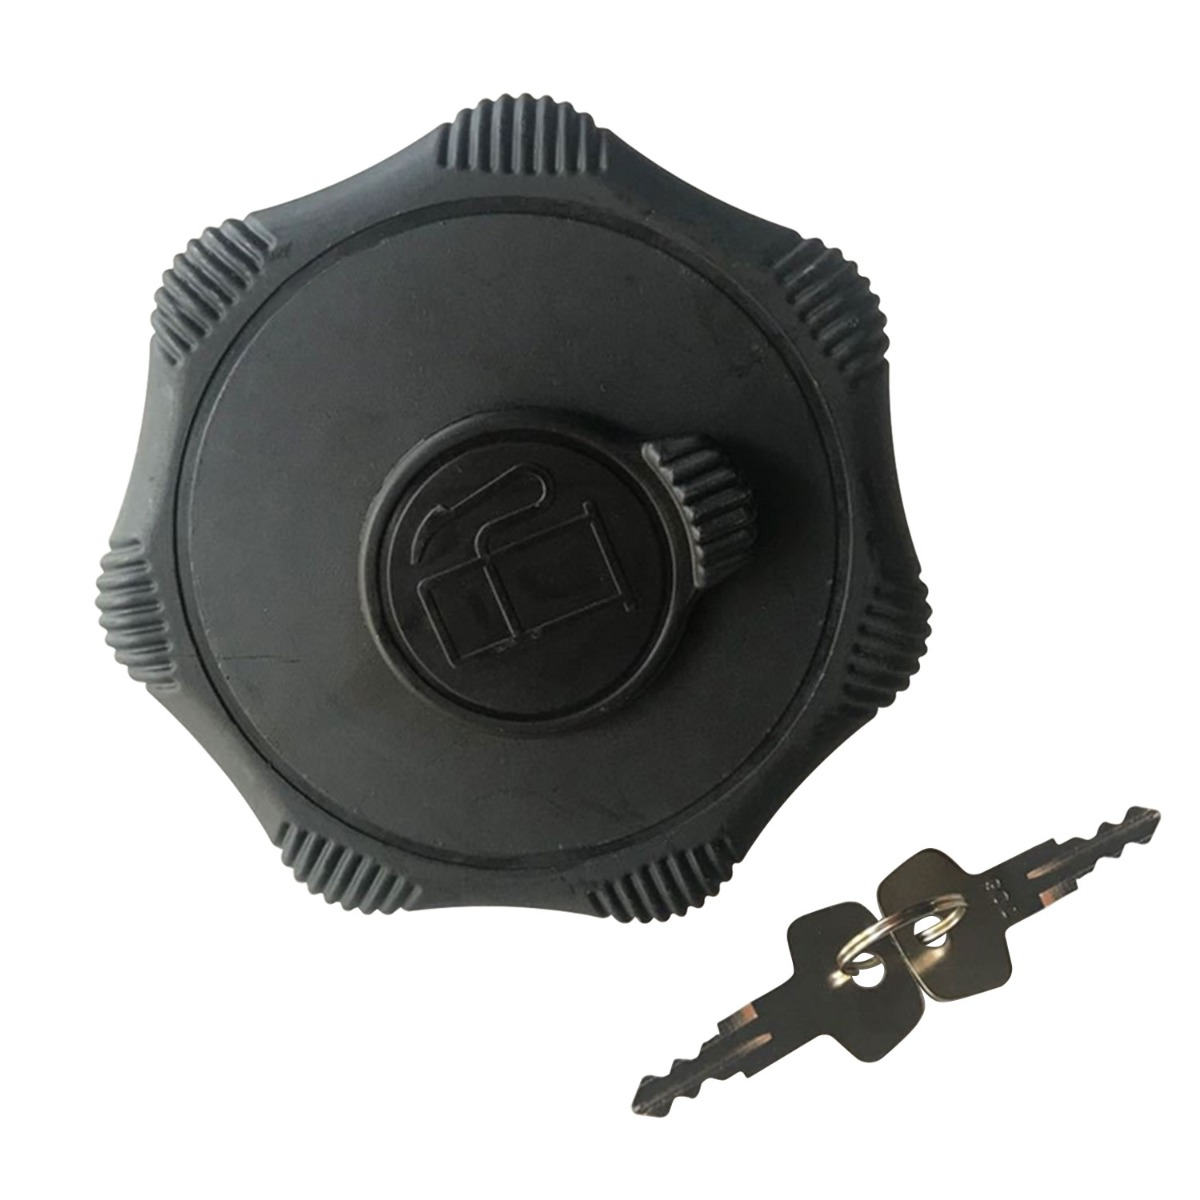 Fuel Cap Assembly With 2 keys R5511-51120 Compatible With Kubota SVL75-2 SVL75-2C SVL95-2S SVL95-2SC KX033-4 R530 R630 U55-4 KX018-4 KX040-4 KX057-4 SVL65-2 SVL75-2 SVL90-2 SVL95-2